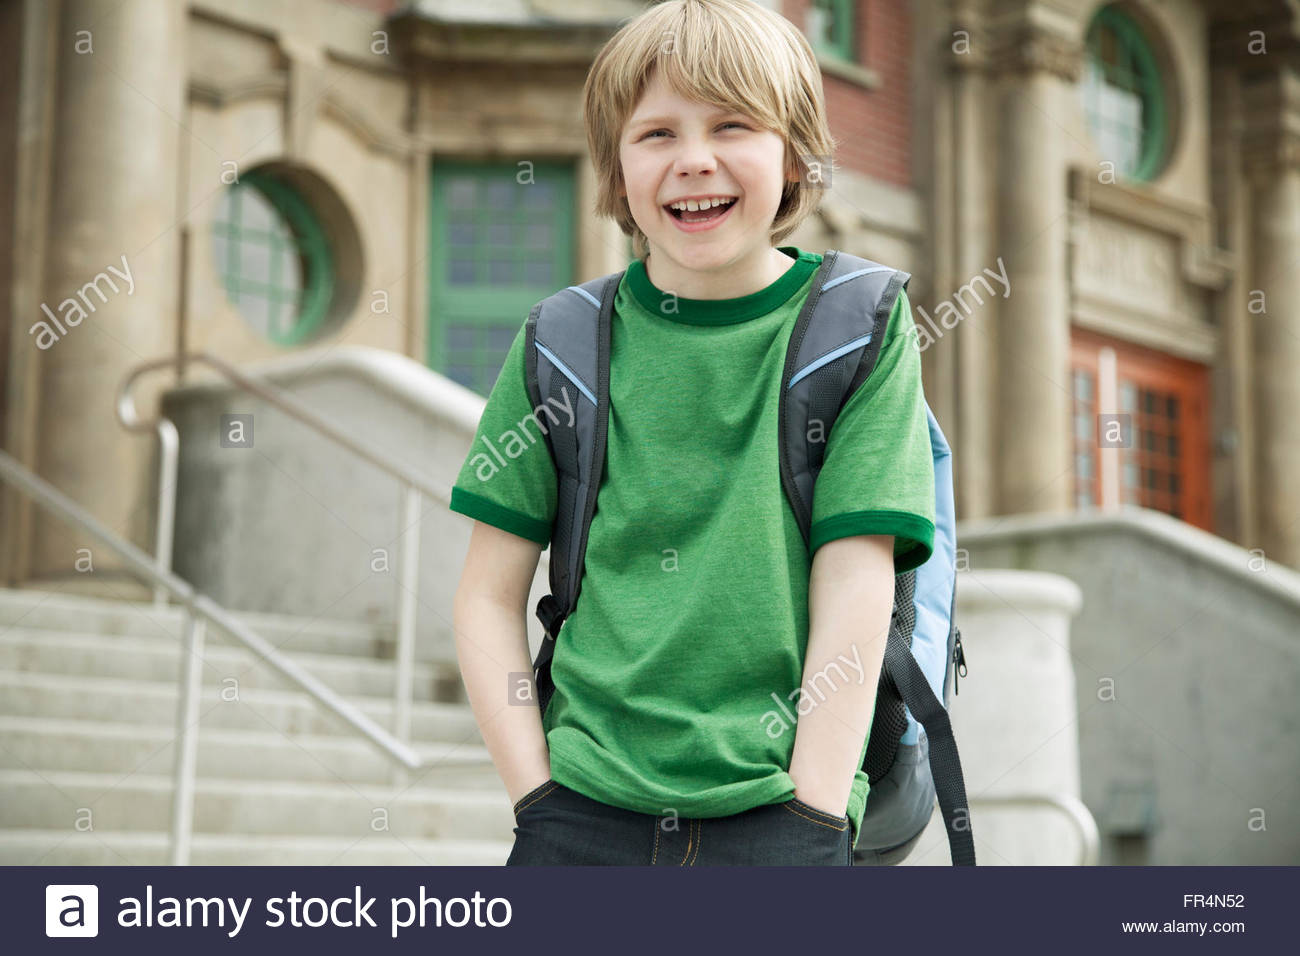 Male, elementary student in front of school building. - Stock Image